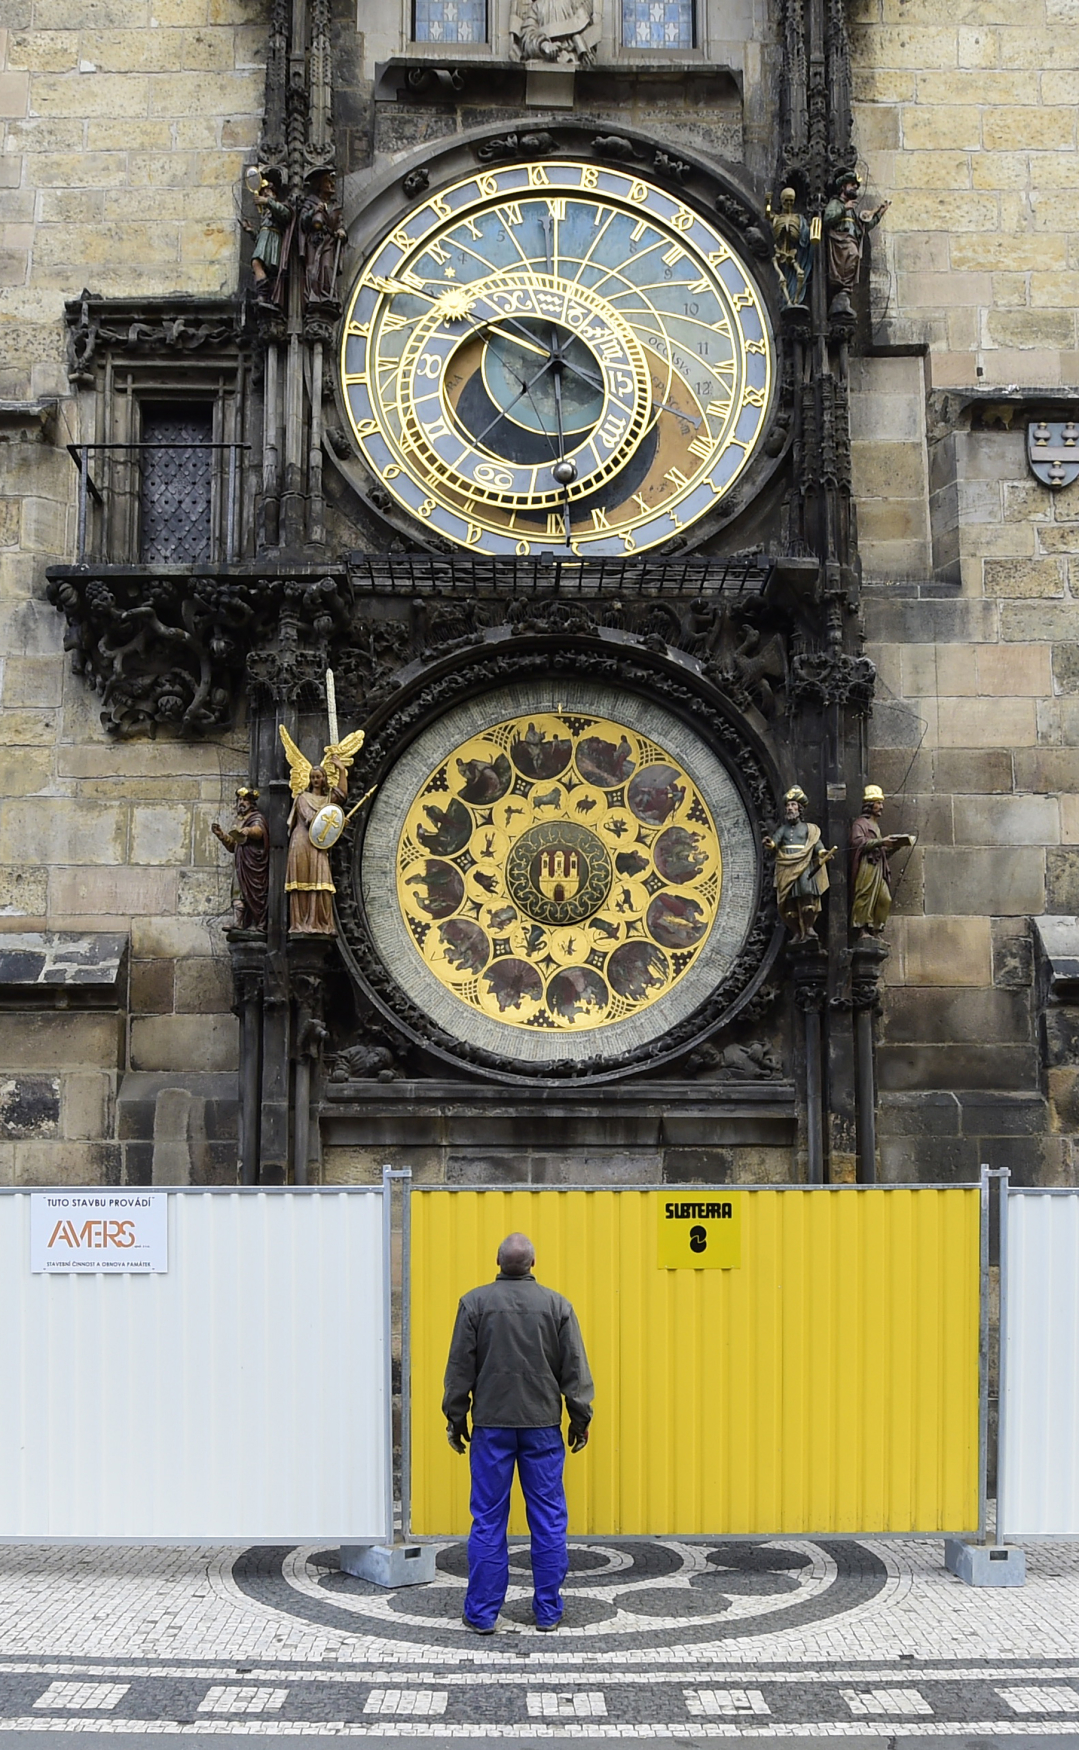 Diplomacy >> Prague's famous astronomical clock to undergo major repair work | Radio Prague